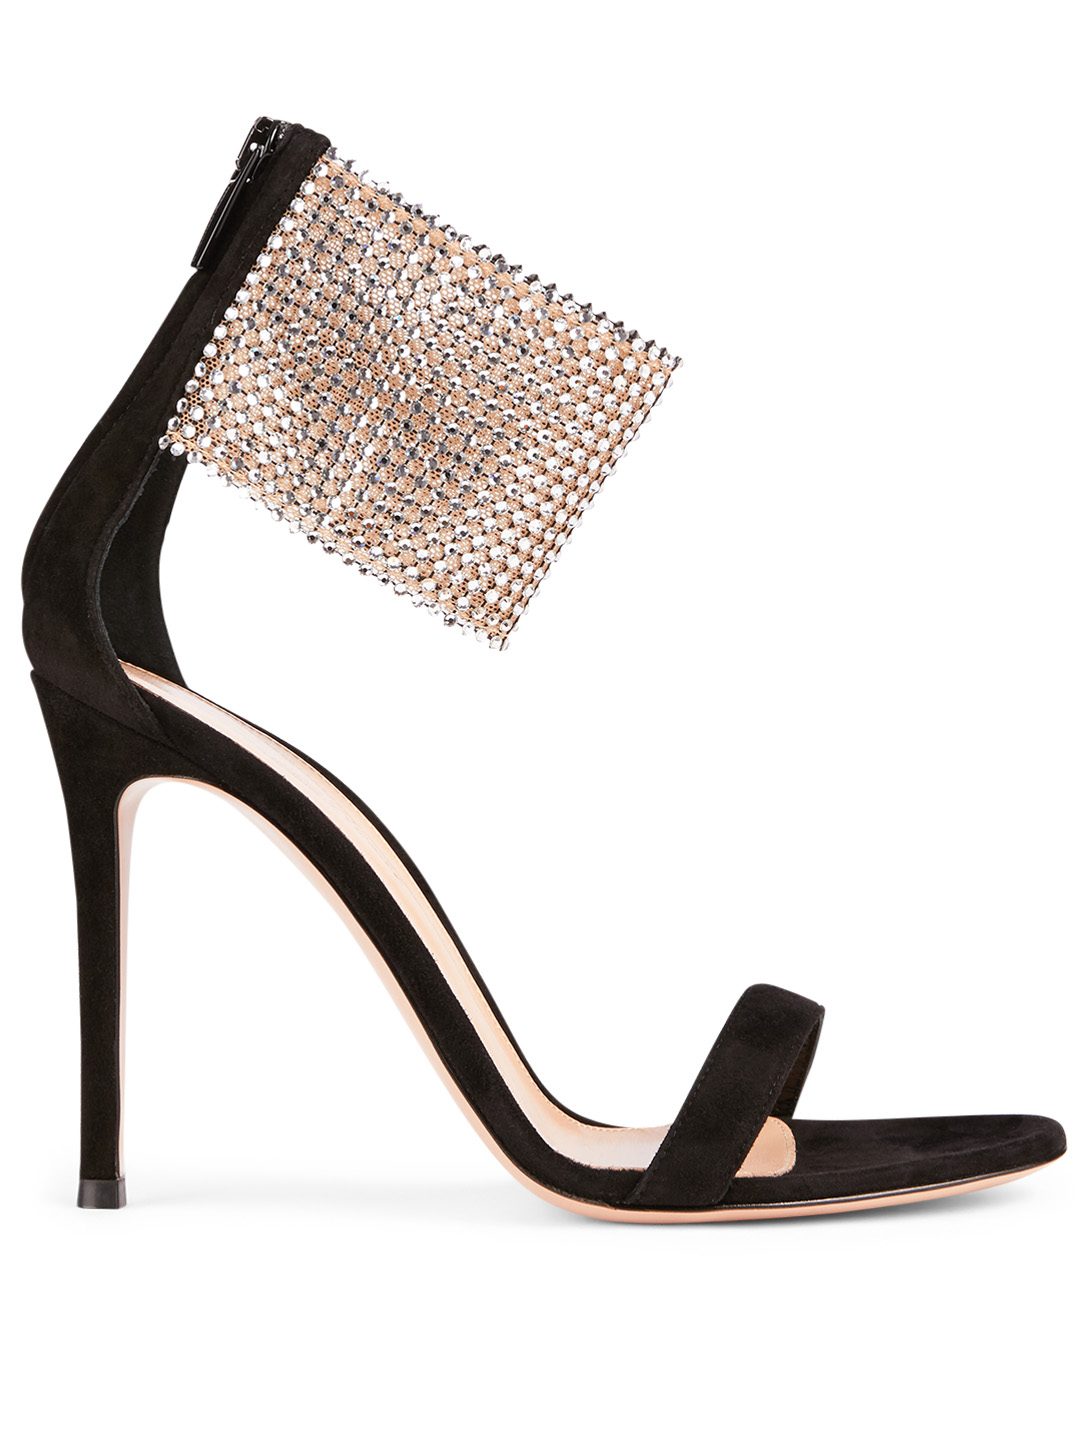 GIANVITO ROSSI Adore Suede Heeled Sandals With Crystal Cuff Women's Black